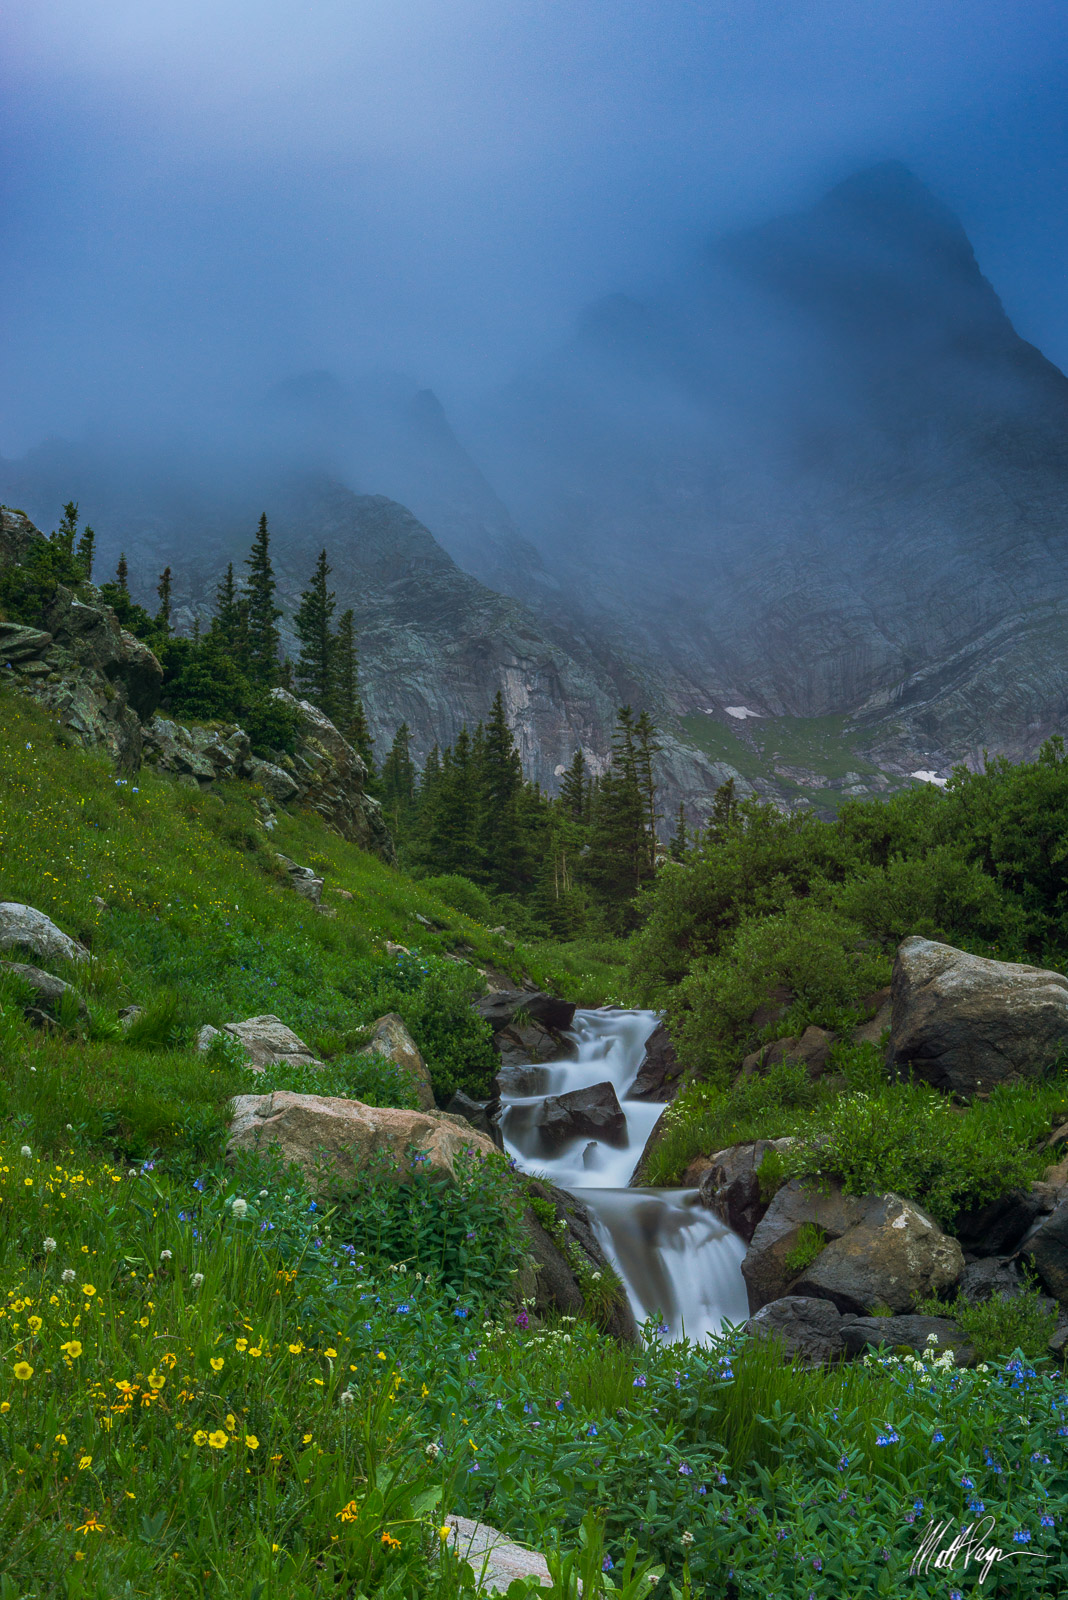 14er, Clouds, Colorado, Crestone Needle, Fog, Long Exposure, Mountains, Sangre de Cristo, Stream, Water, Westcliffe, Wildflowers, photo